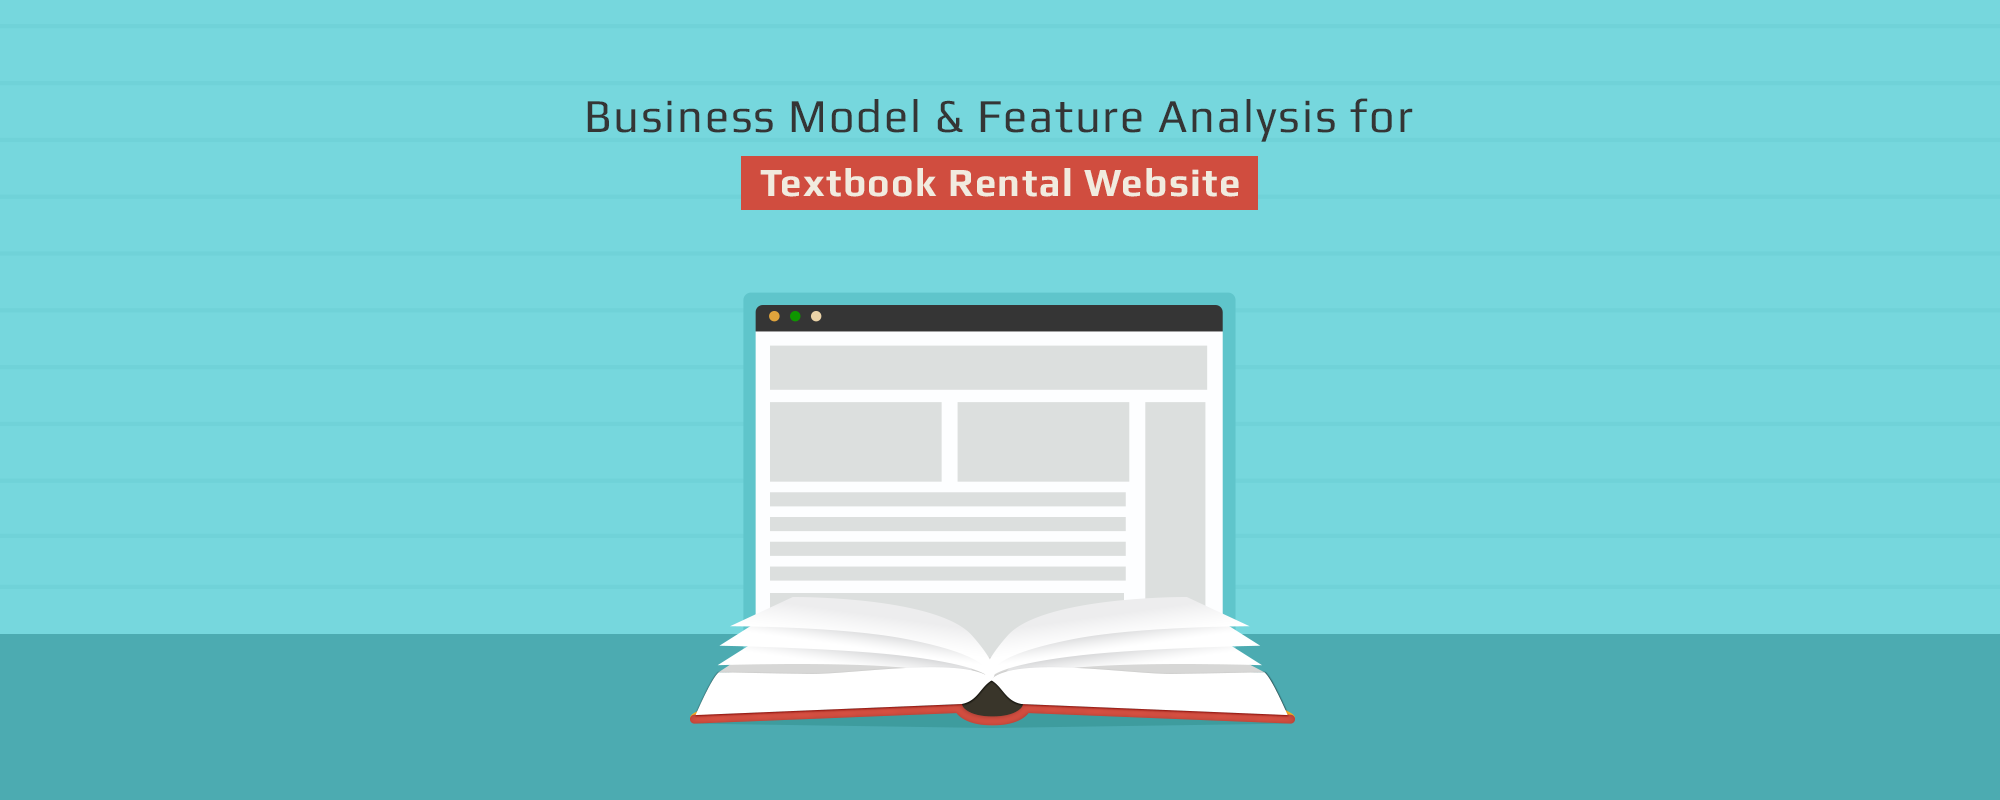 Build a Textbook Rental Website Around These Features and Business Model